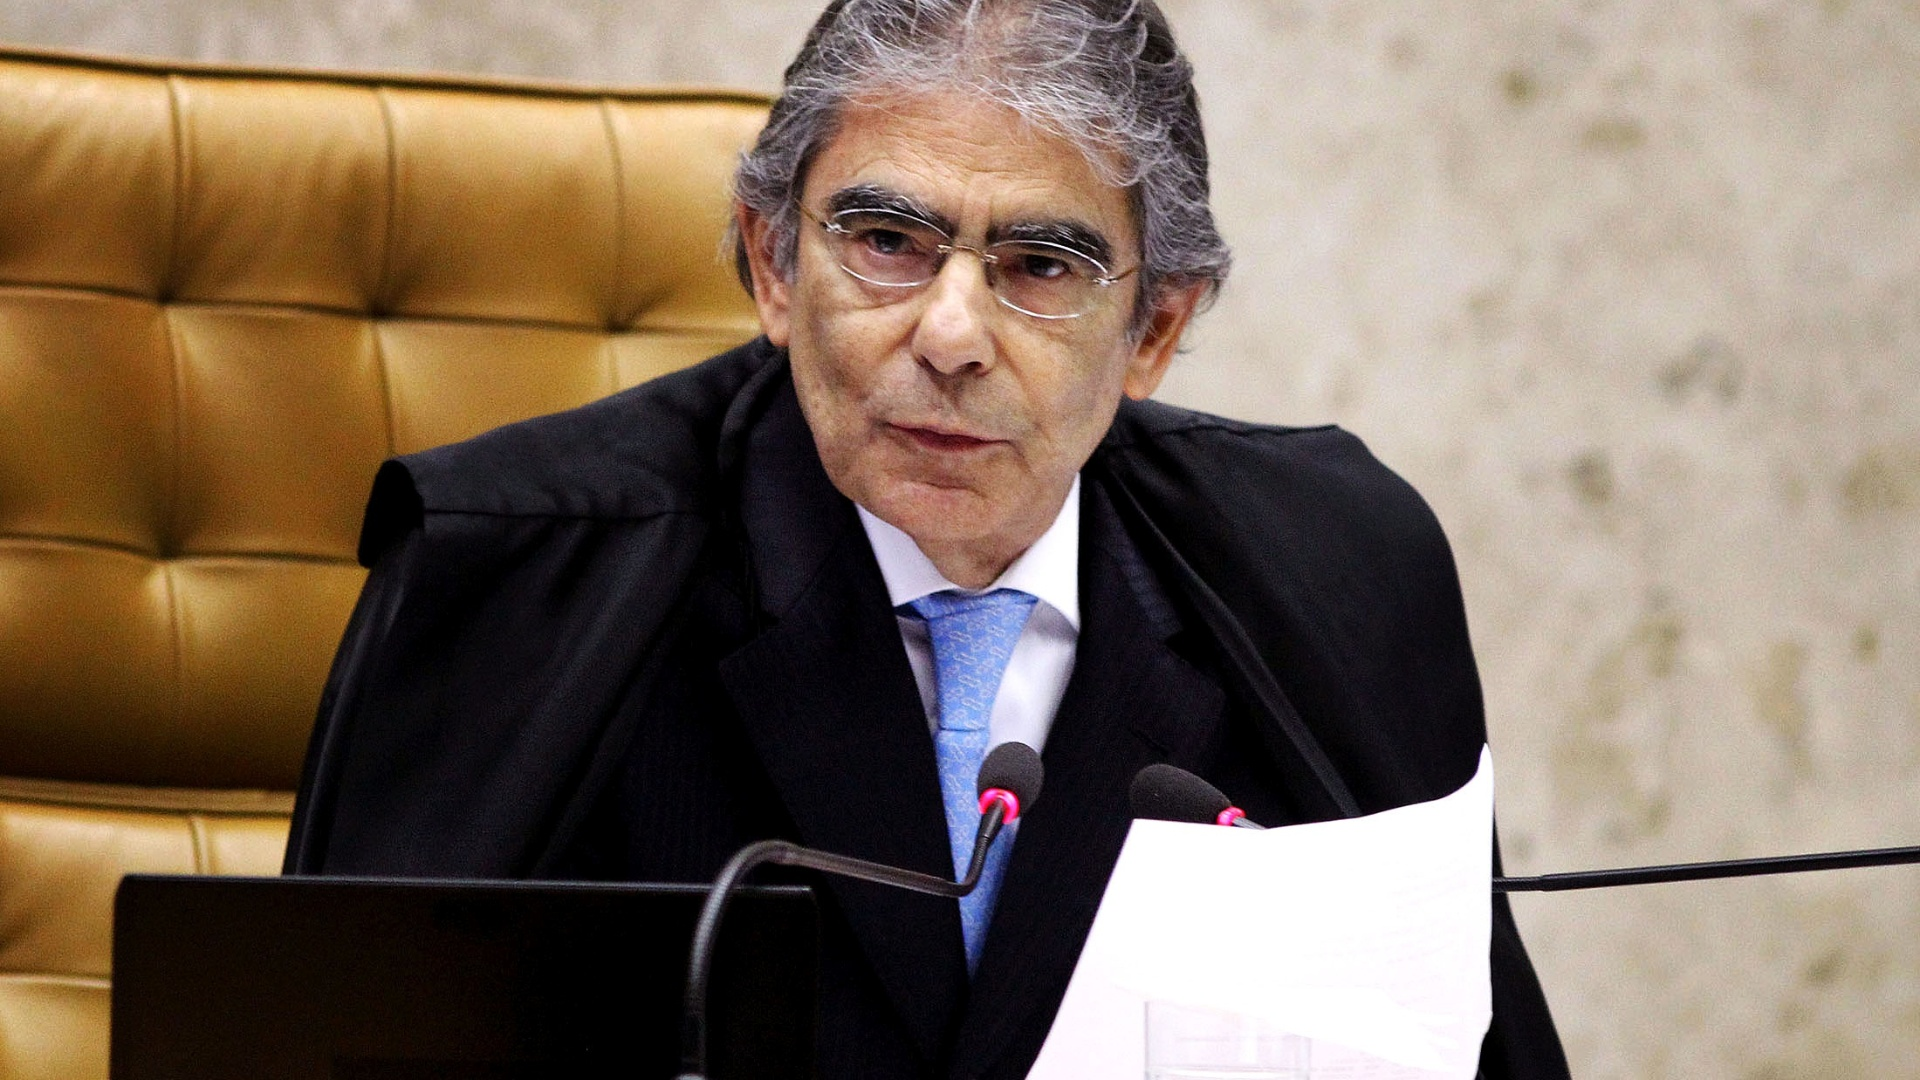 4.out.2012 - Presidente do STF, ministro Carlos Ayres Britto em sesso de julgamento do STF. Britto se aposentar compulsoriamente em 18 de novembro e o STF votar na quarta-feira (10) seu sucessor da presidncia do tribunal. Pelos critrios normalmente utilizados, Joaquim Barbosa  o favorito para o prximo mandato de dois anos